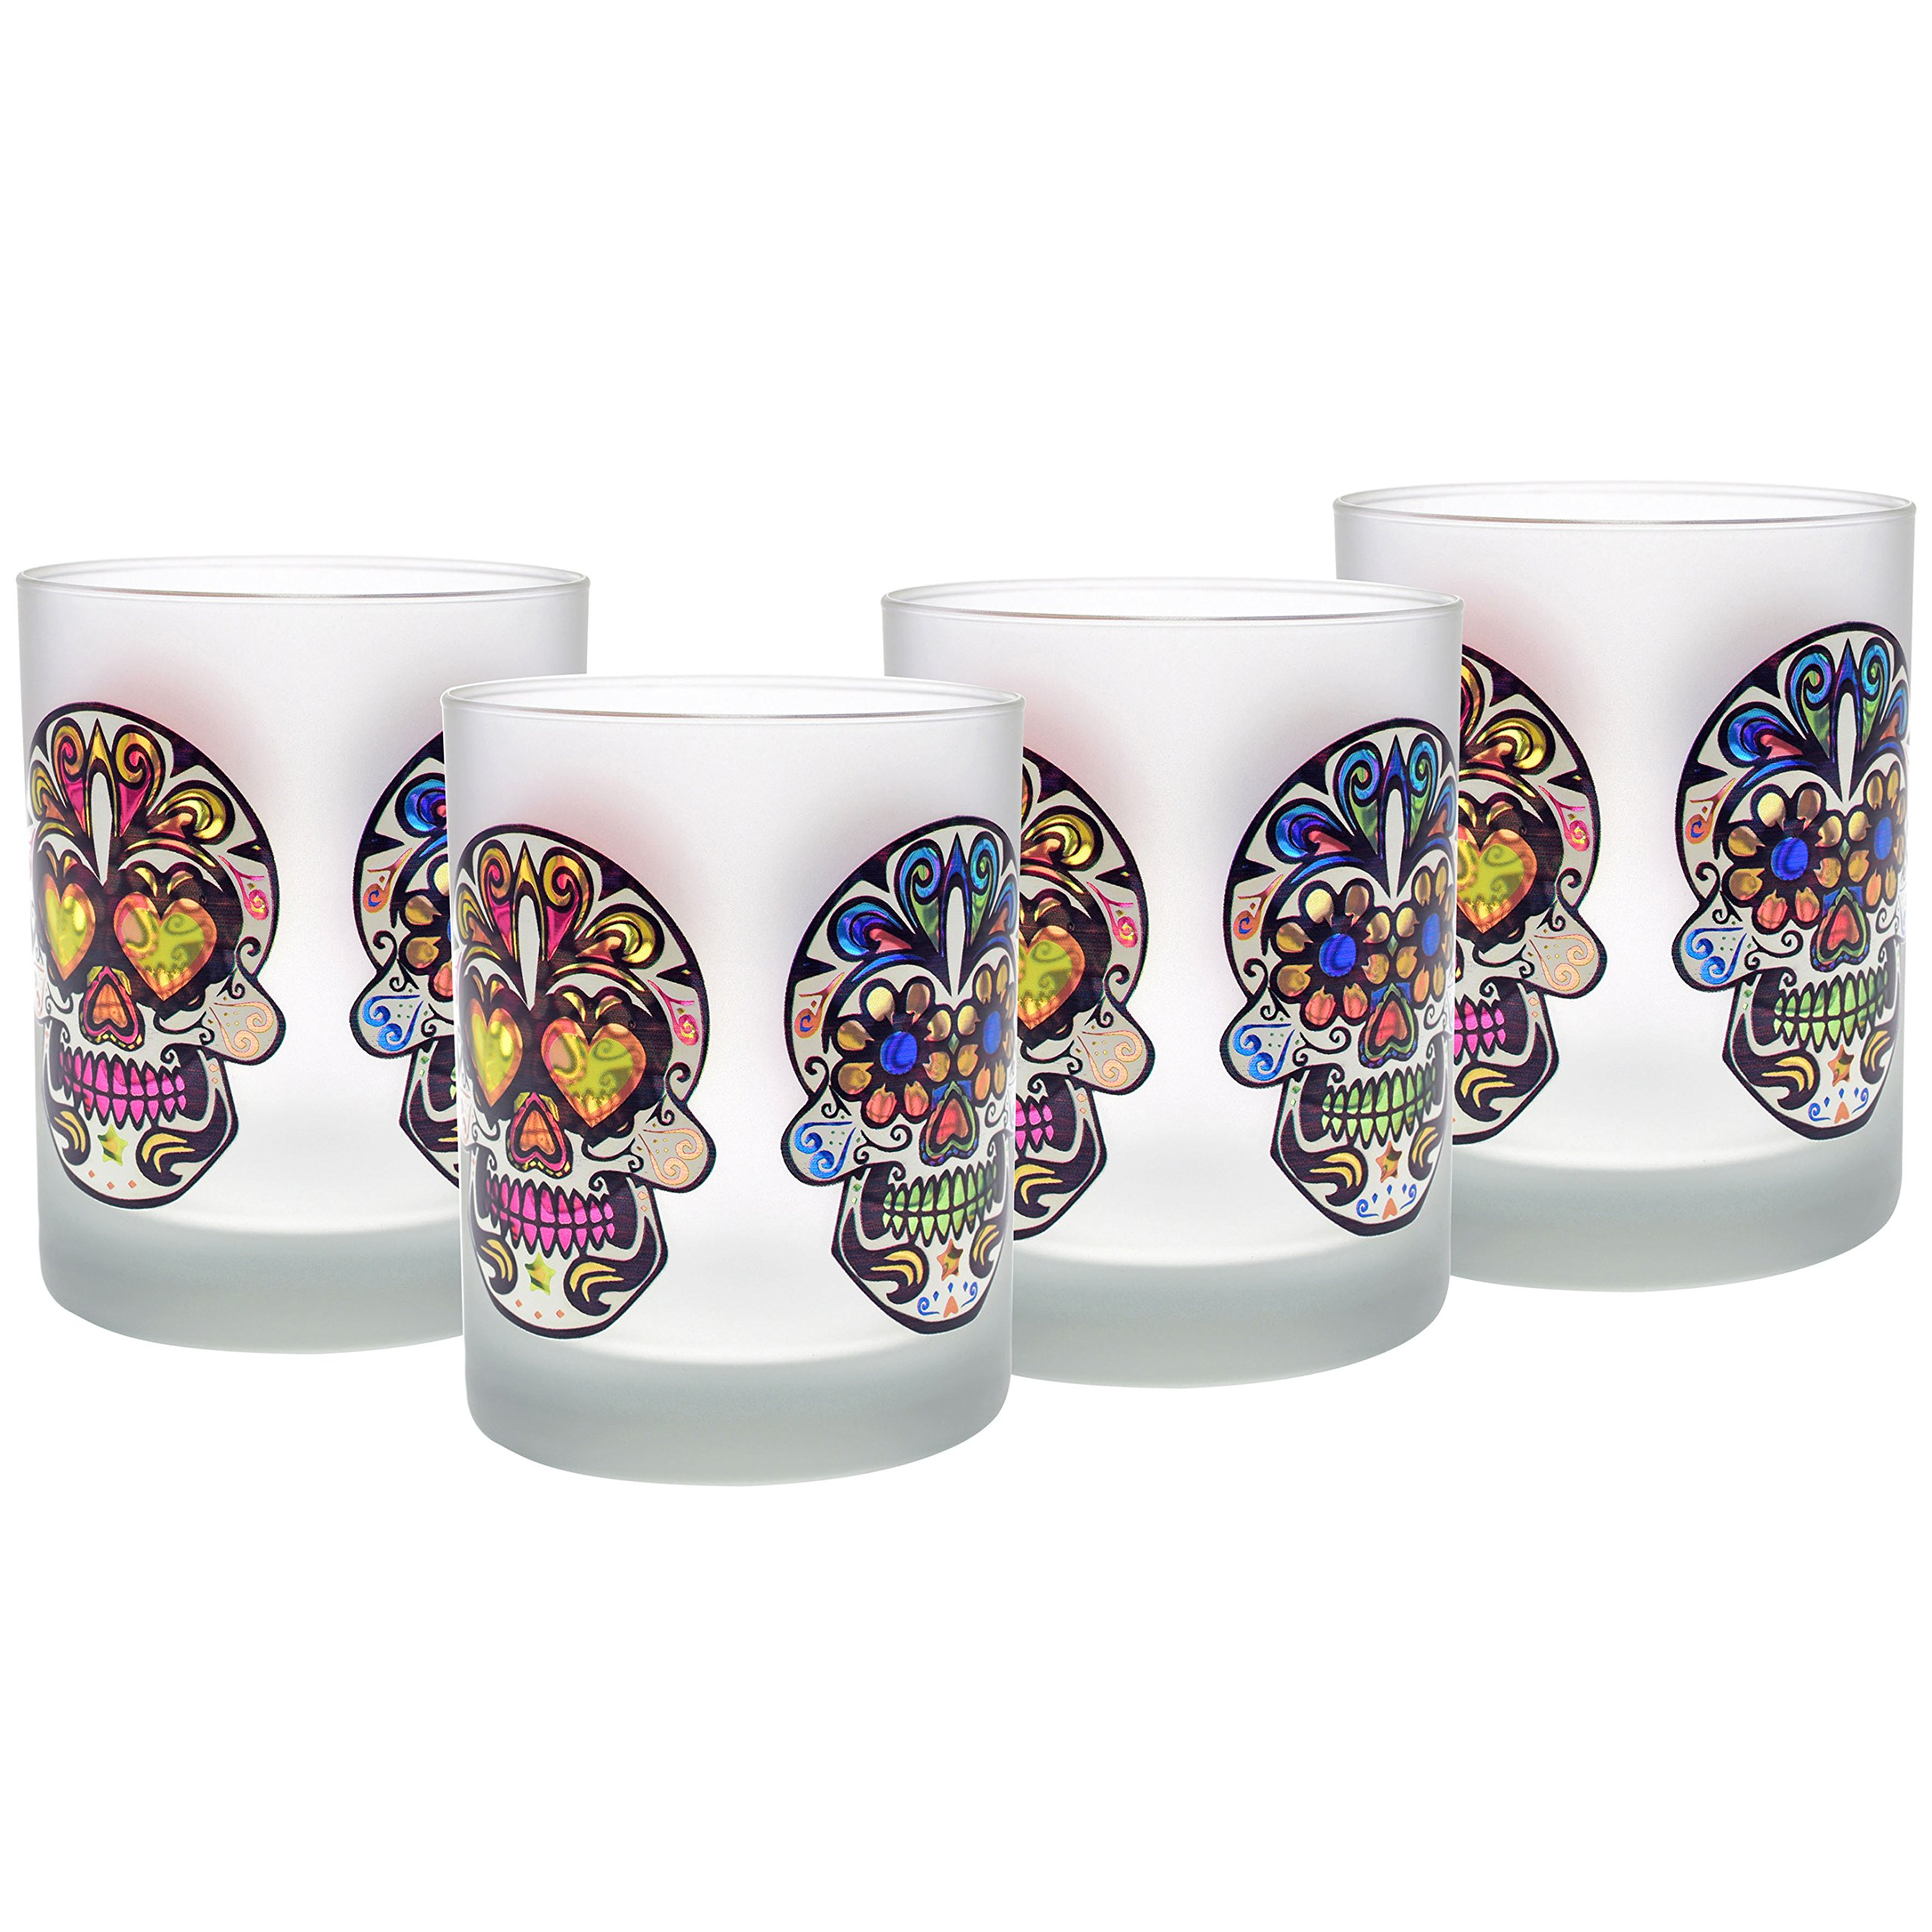 Decorated Sugar Skull Glasses